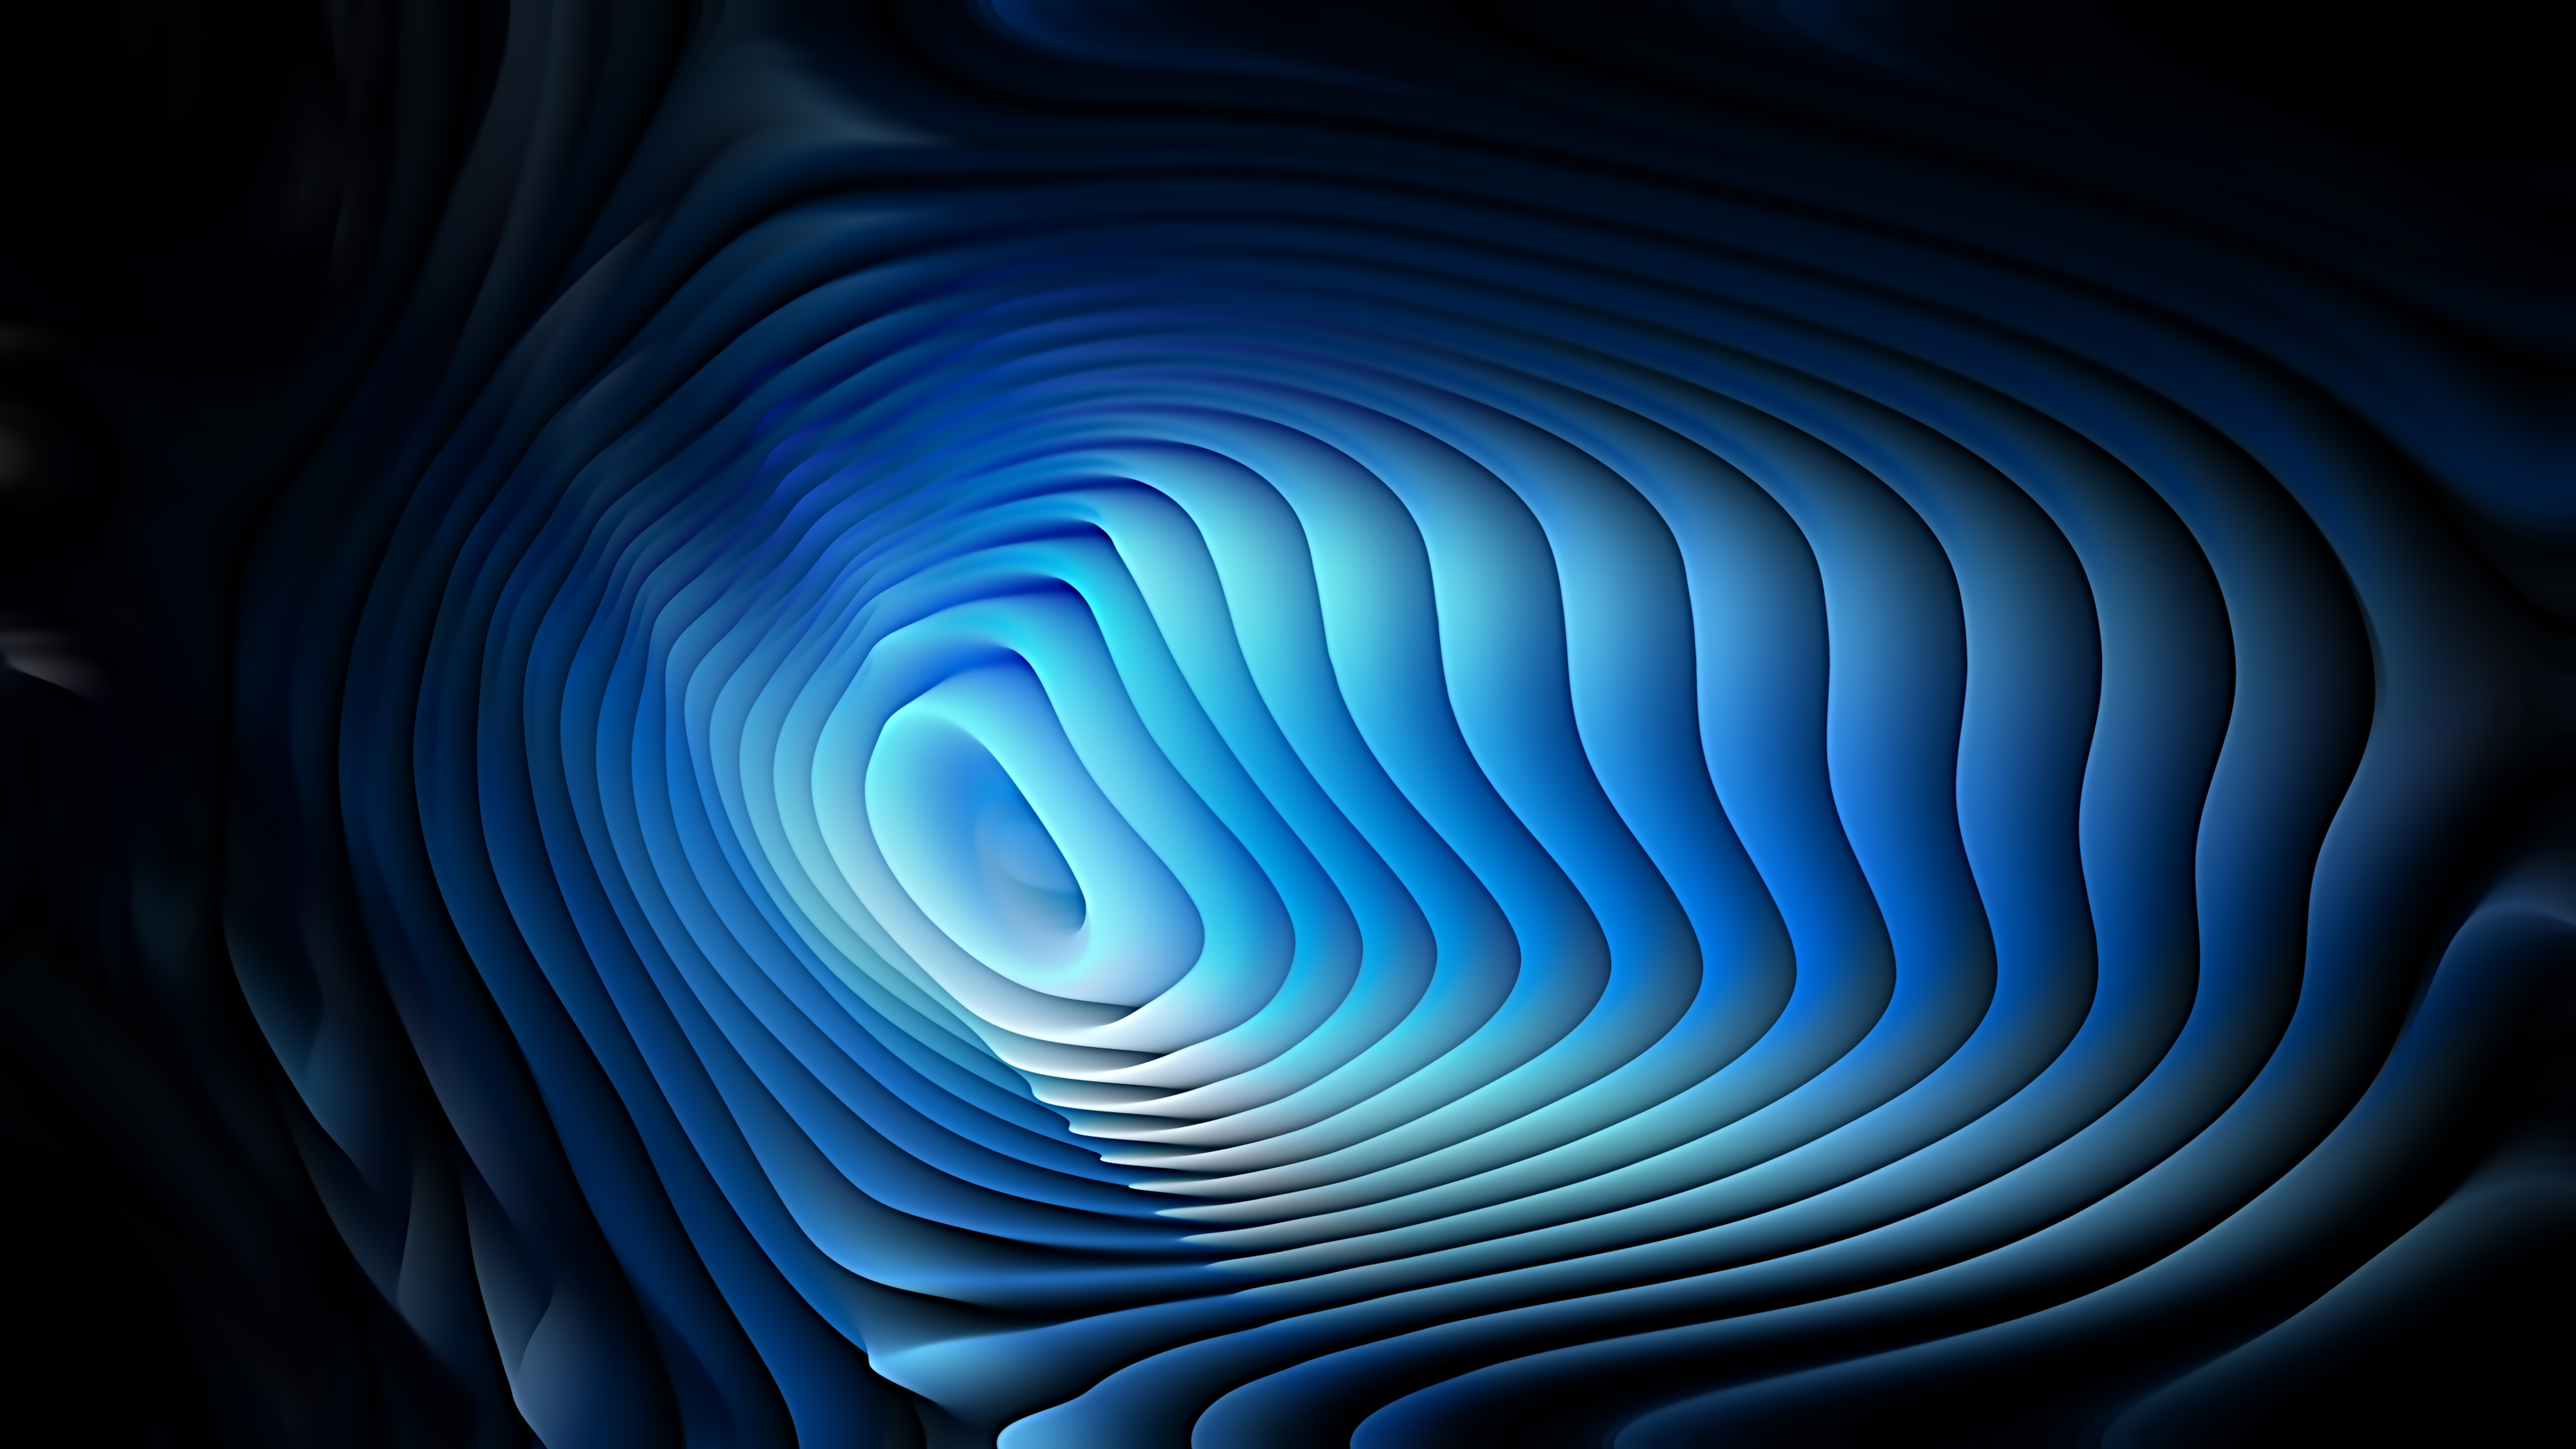 Black and Blue 3d Curved Lines Texture